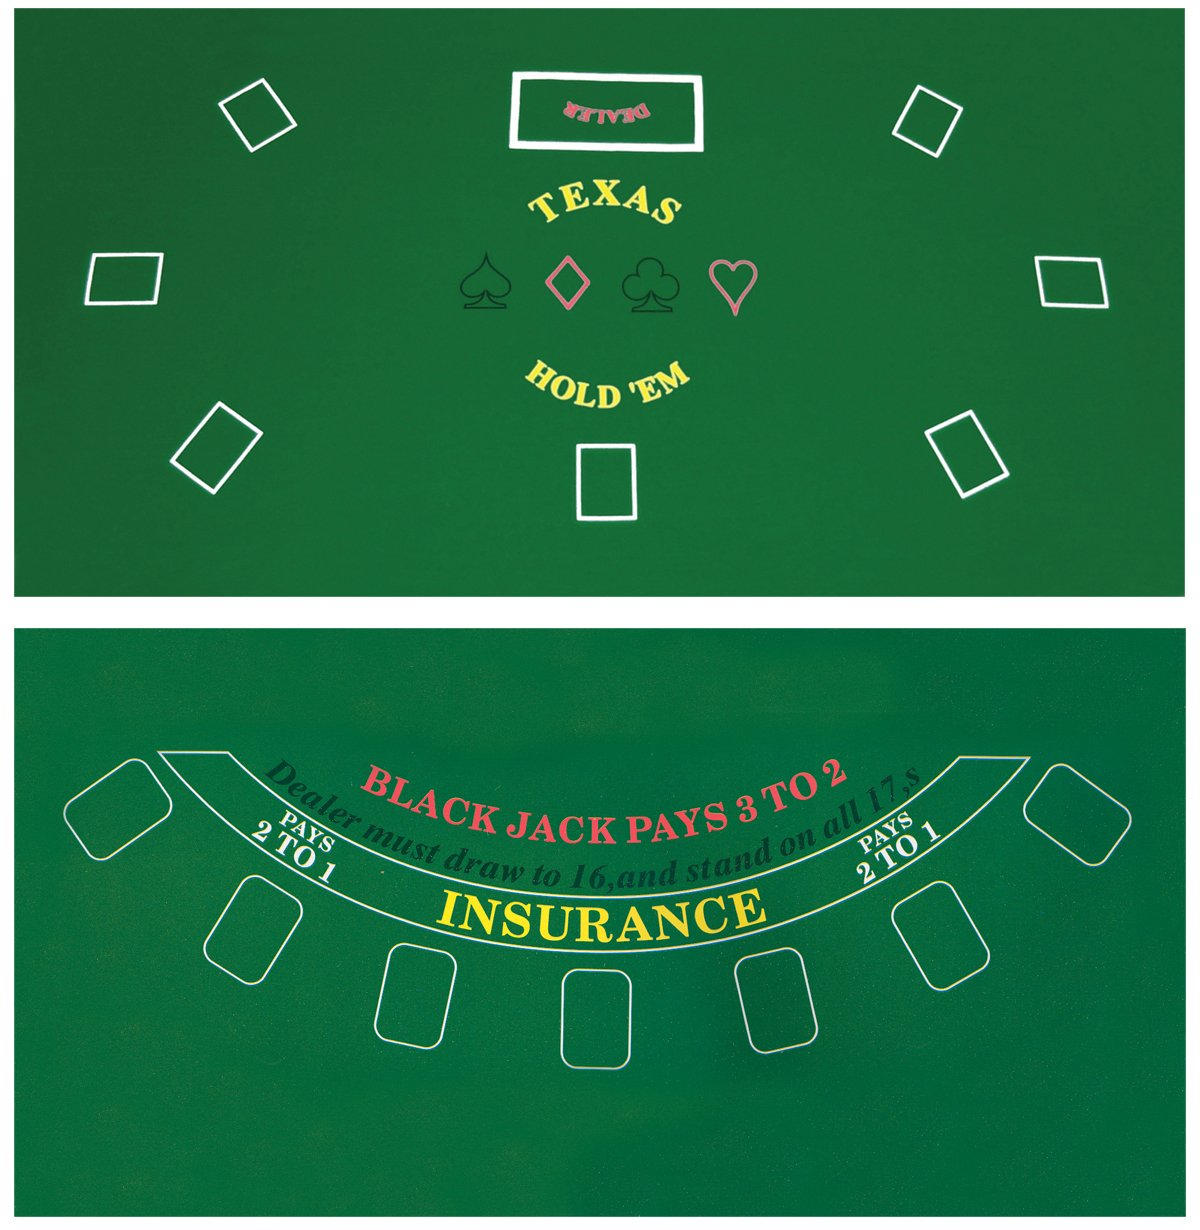 Blackjack table top view - Amazon Com Da Vinci 2 Sided 36 Inch X 72 Inch Texas Holdem Blackjack Casino Felt Layout Poker Table Tops Sports Outdoors